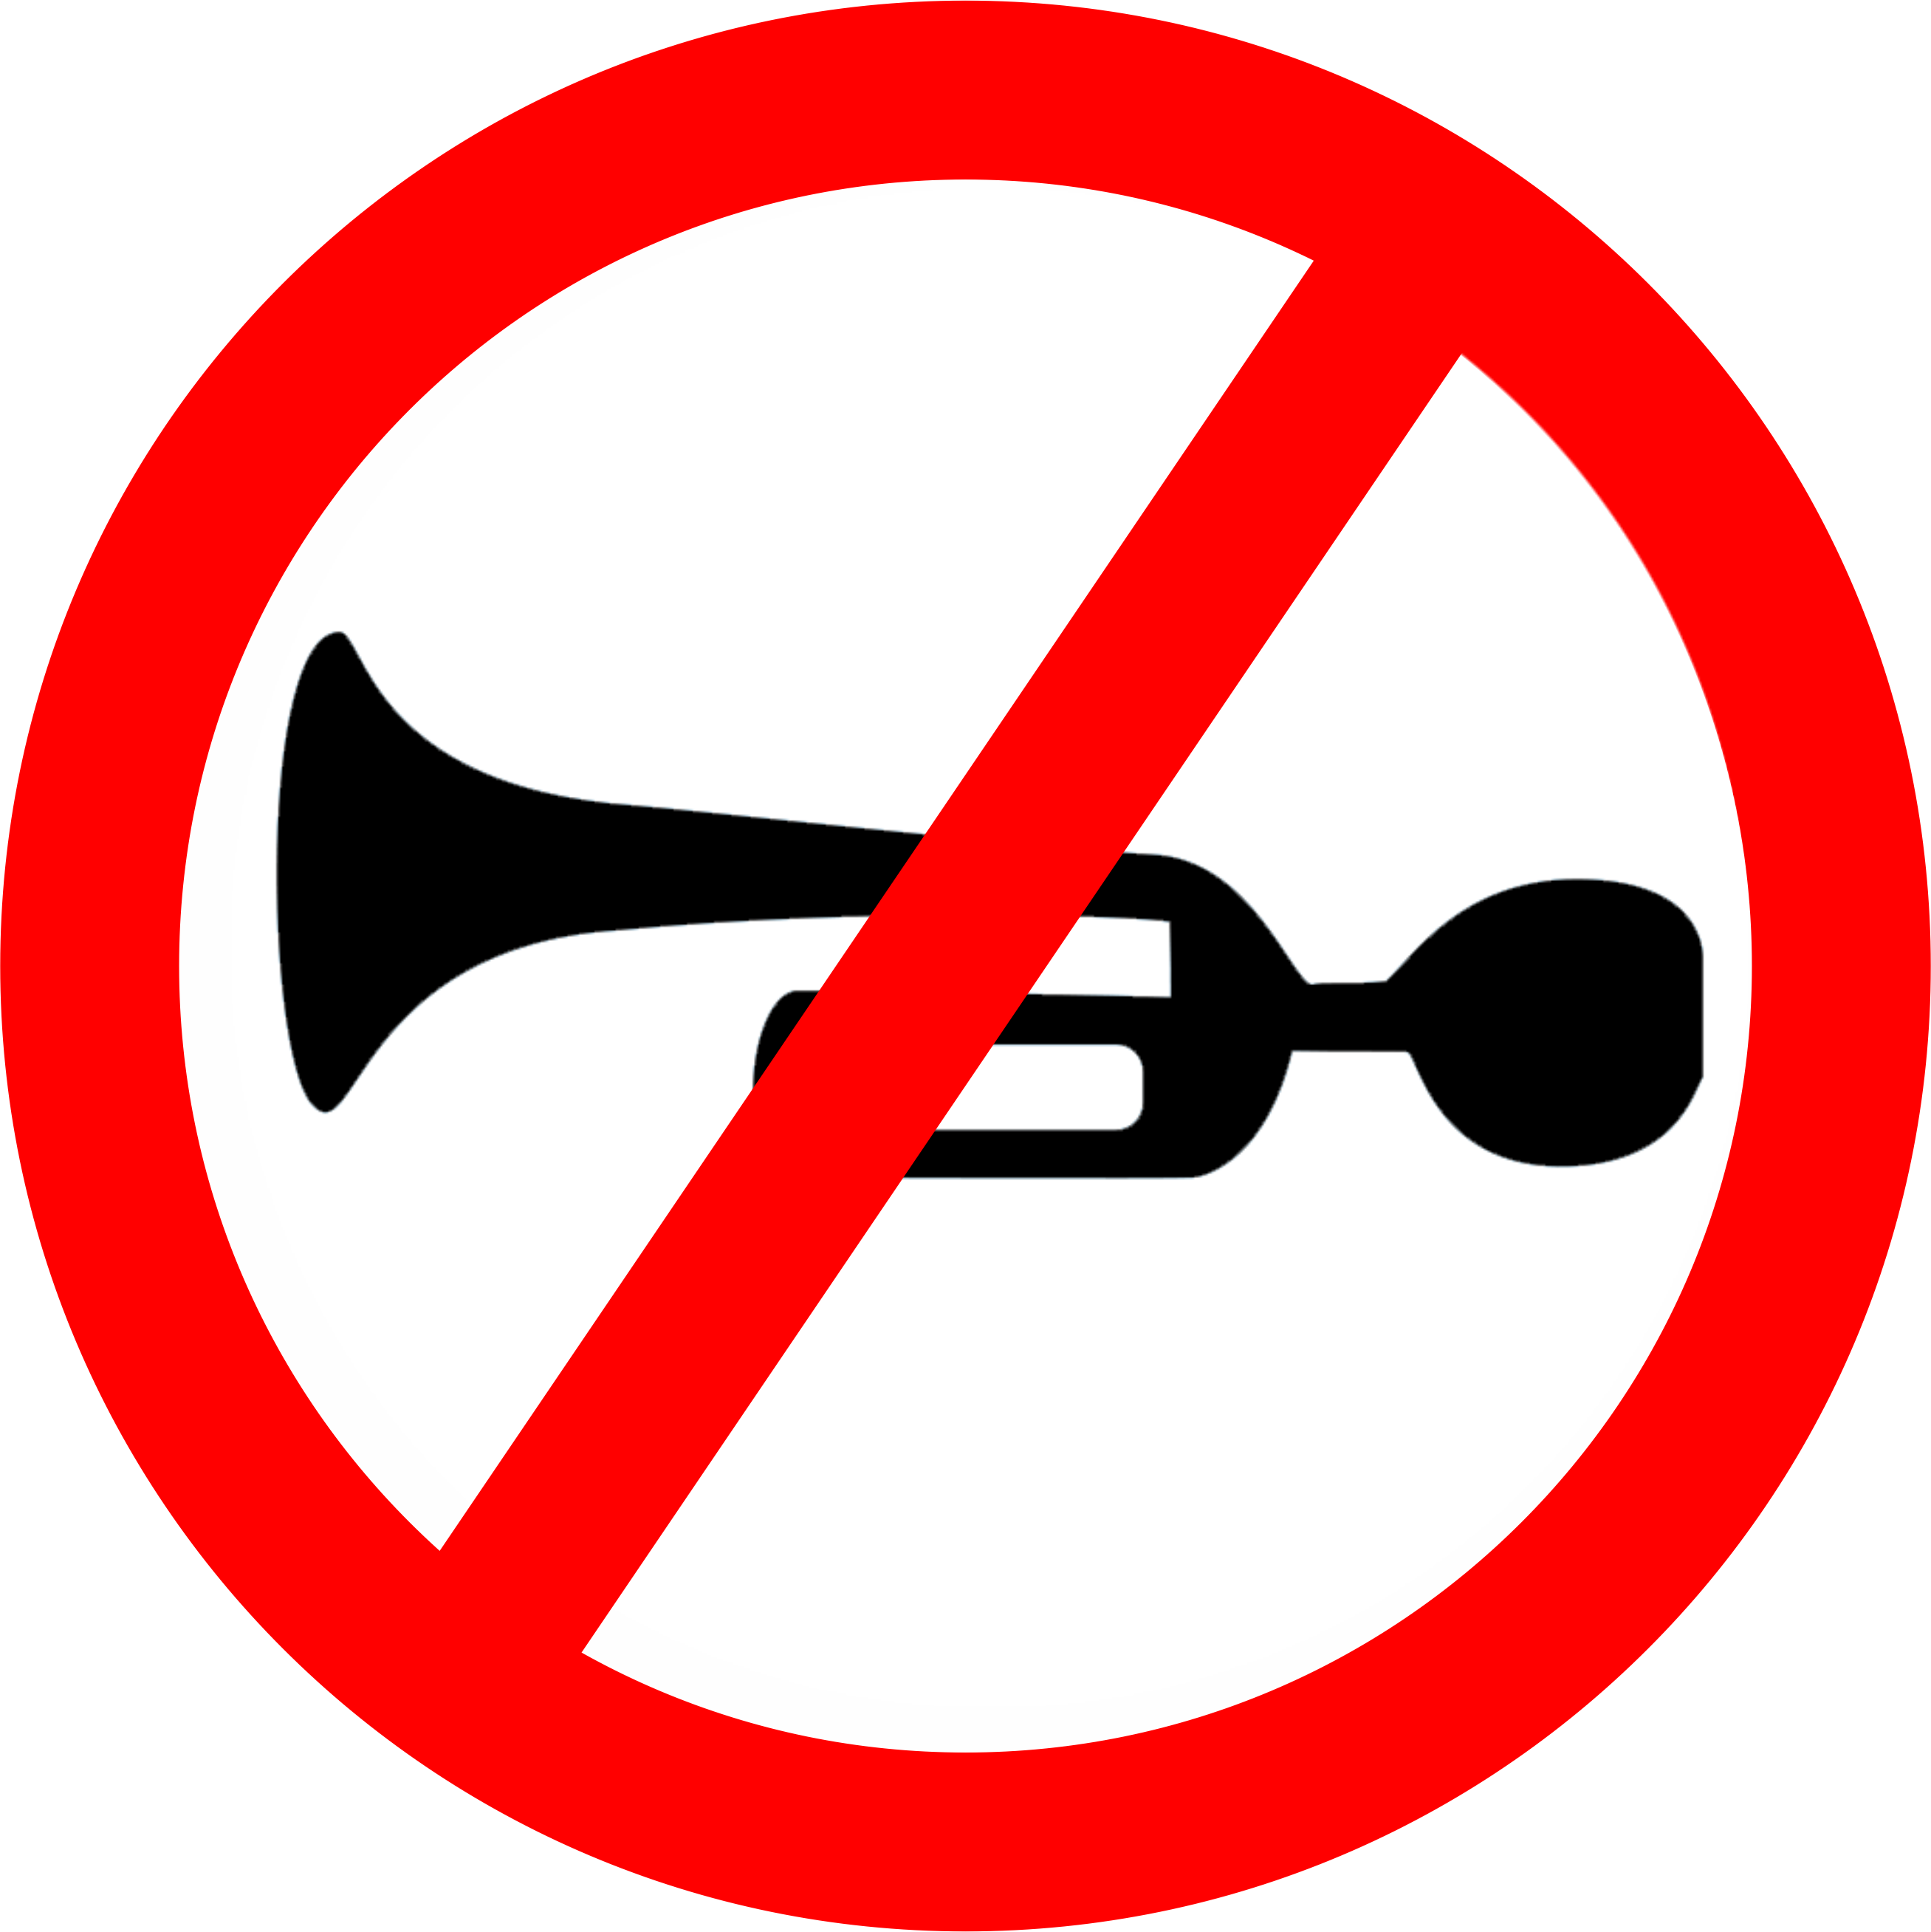 File:HORN PROHIBITED.png.